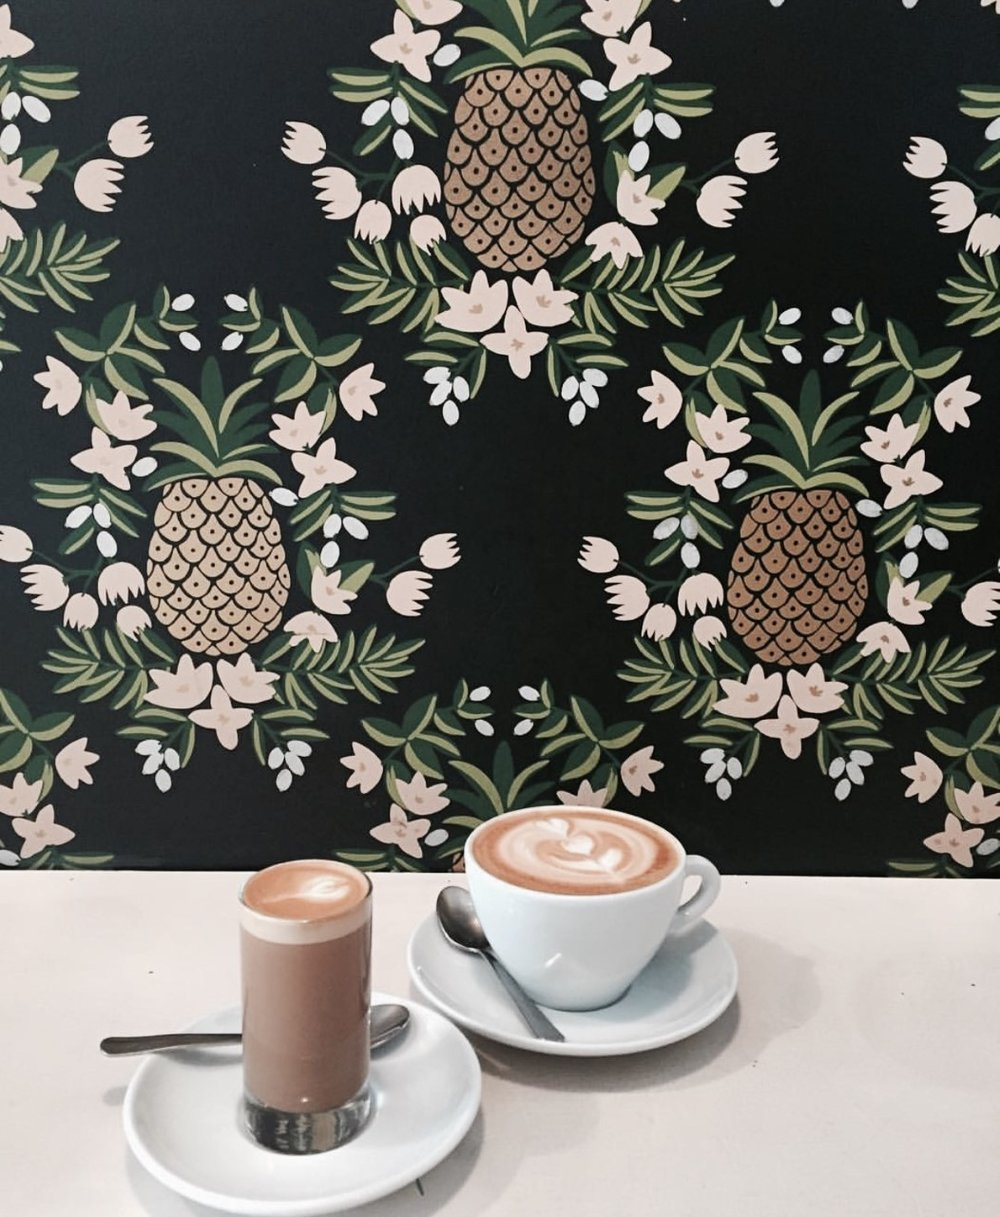 WRECKING BALL  - Ok, so the main thing here is the amazing pineapple wallpaper! I mean, come on that wallpaper and a cup of coffee in front of it has to create a statement Insta photo! I had been dying to go here, since I saw it on Yelp a while back, so when my friend from L.A (also a coffee addict) was visiting, we couldn't wait to catch up & snap away. Even there sugar and milk table had the trendy pineapple background as well as cute sugar cubes on a block of wood (I get really excited about the small details). We also got a photo shoot session outside, as its the perfect place to take a picture of (your outfit, duh) against a white wall & some trendy coffee shop furniture. We managed to get some cool boomerangs there too. Will post on my Instagram soon! Keep a lookout!